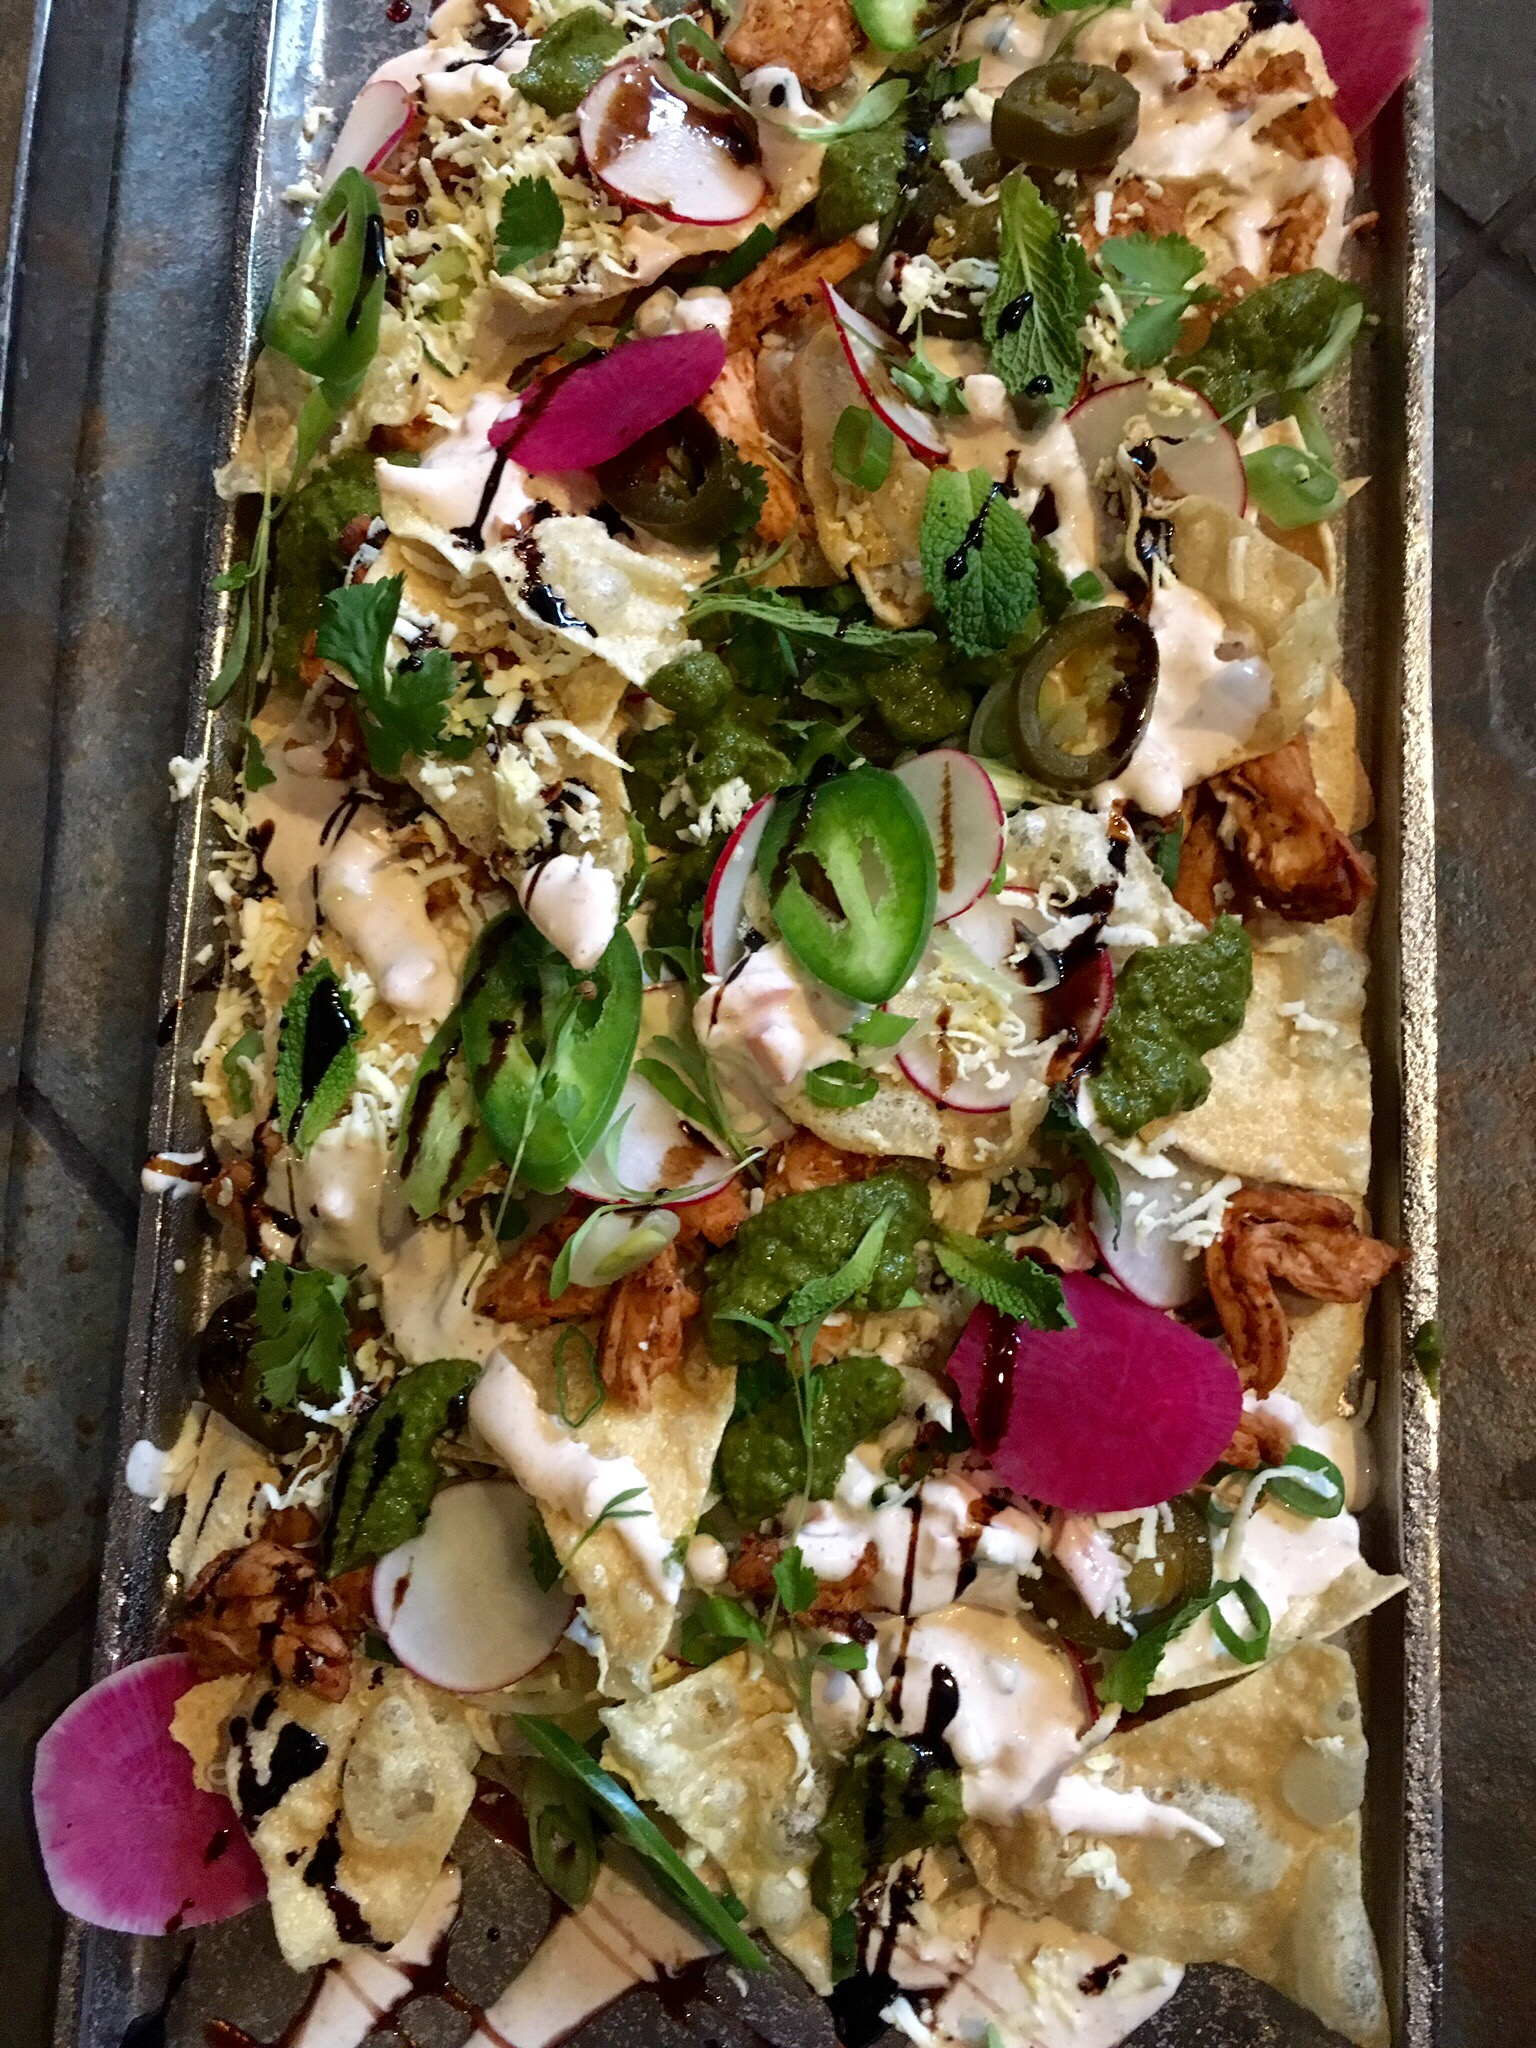 Indian Nachos Shredded Tandoori Chicken, Crispy Pappadum Chips, Yogurt Raita, Shaved Radishes, Pickled Jalapeno, Crumbled Paneer, Green Onion, Cilantro, Chimicurri or Mint Chutney